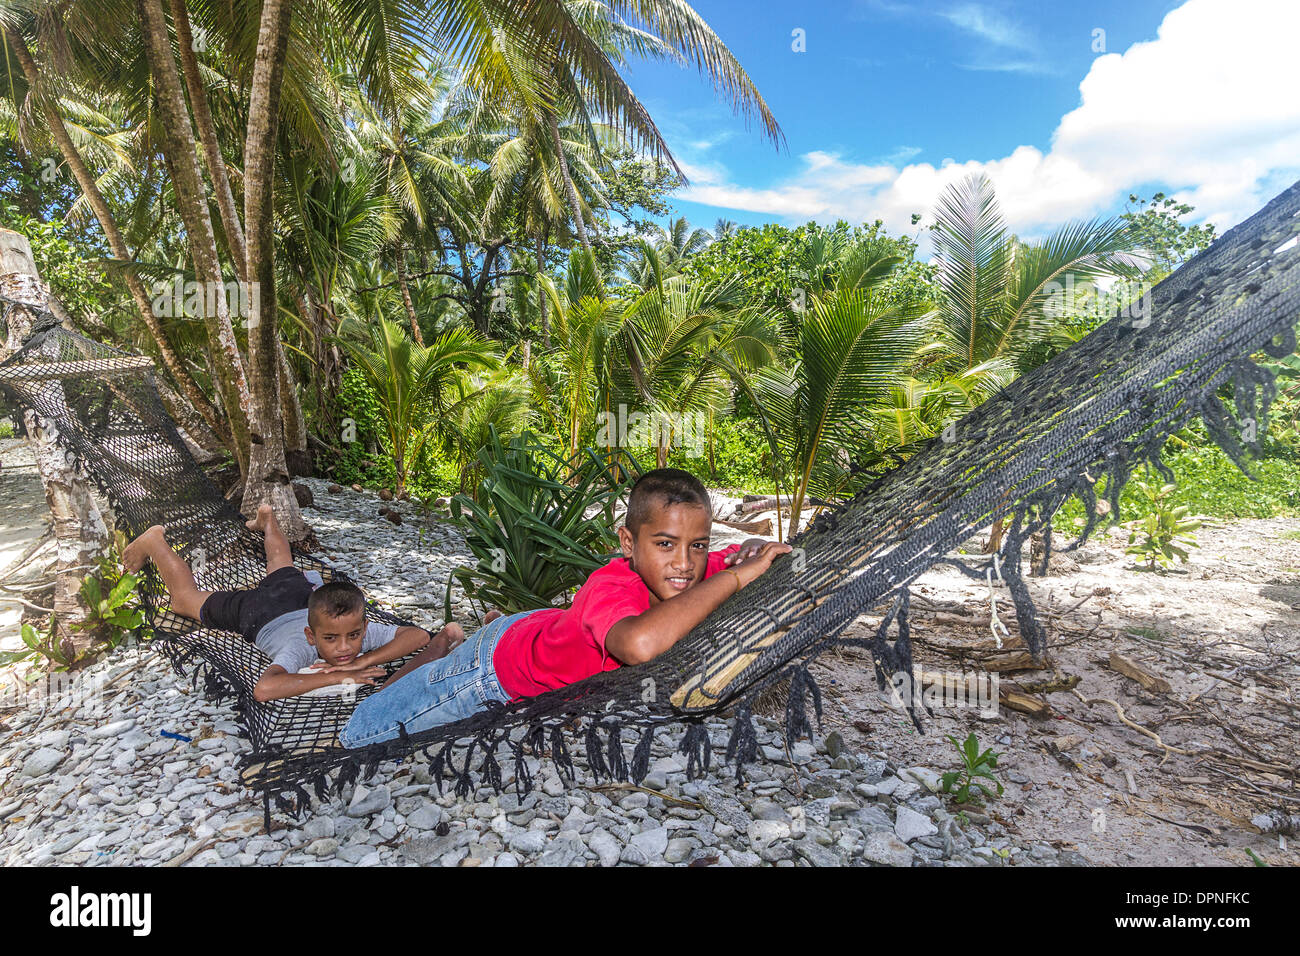 Young local boys lie in a hammock on a beach in Kosrae, Micronesia. - Stock Image